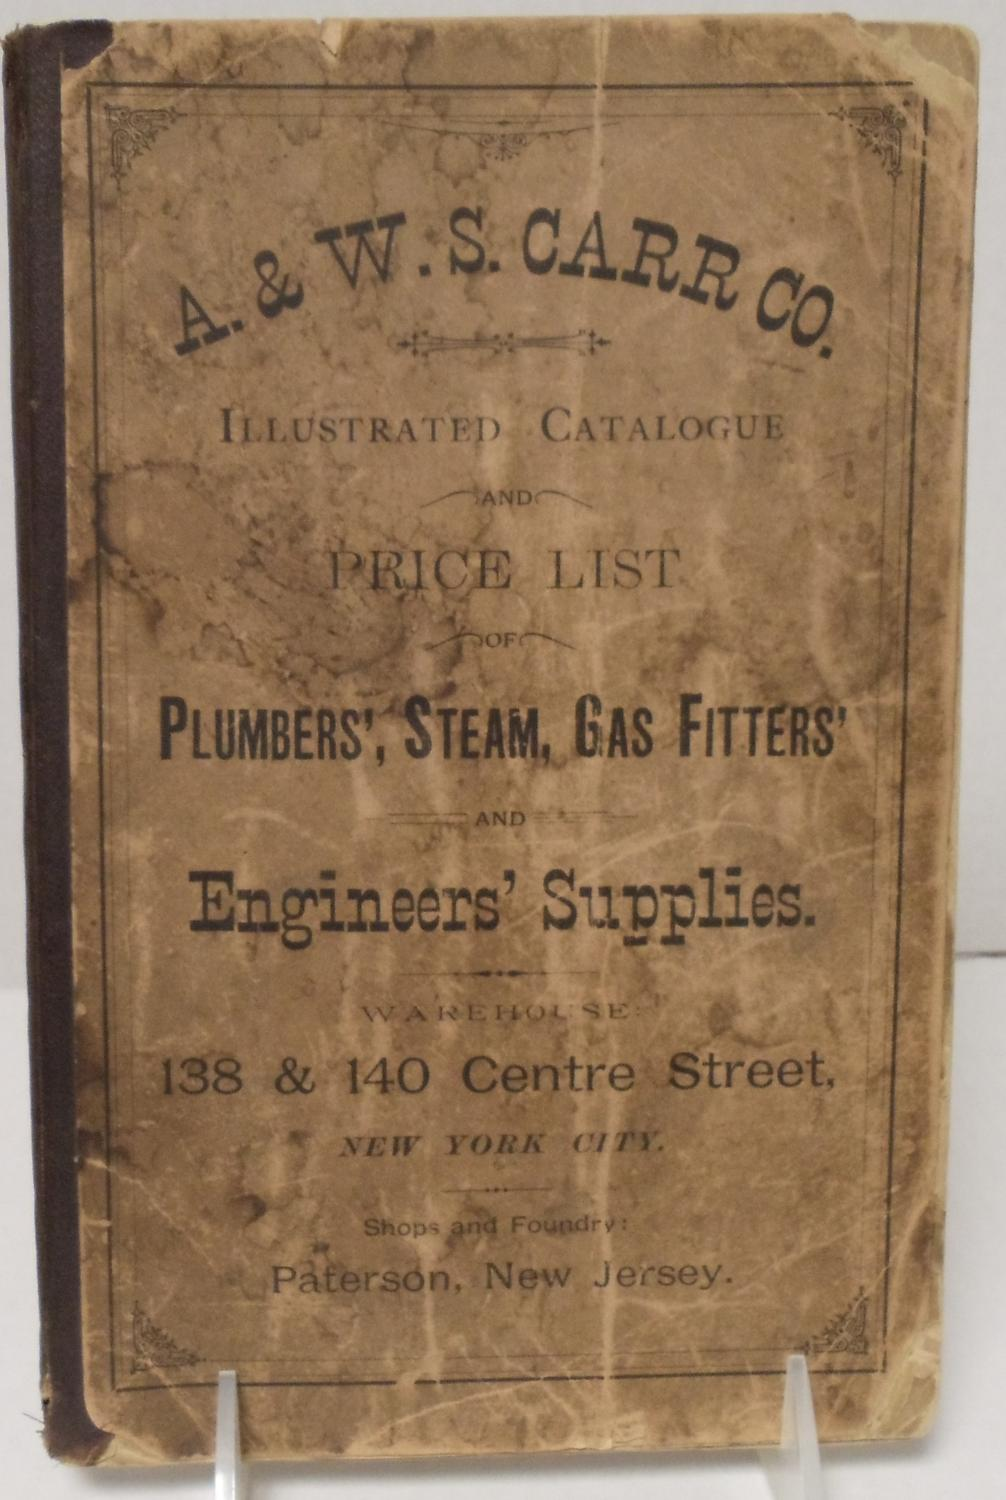 A. & W. S. Carr Co. May 1891 Illustrated Catalogue and Price List of Plumbers', Steam, Gas Fitters' and Engineers' Supplies. Warehouse 138 & 140 Cent a 156 page soft cover NYC plumbing heating thread bound catalog dated May 1891 with many 19th century illustrations and pricing of ornate steam radiat